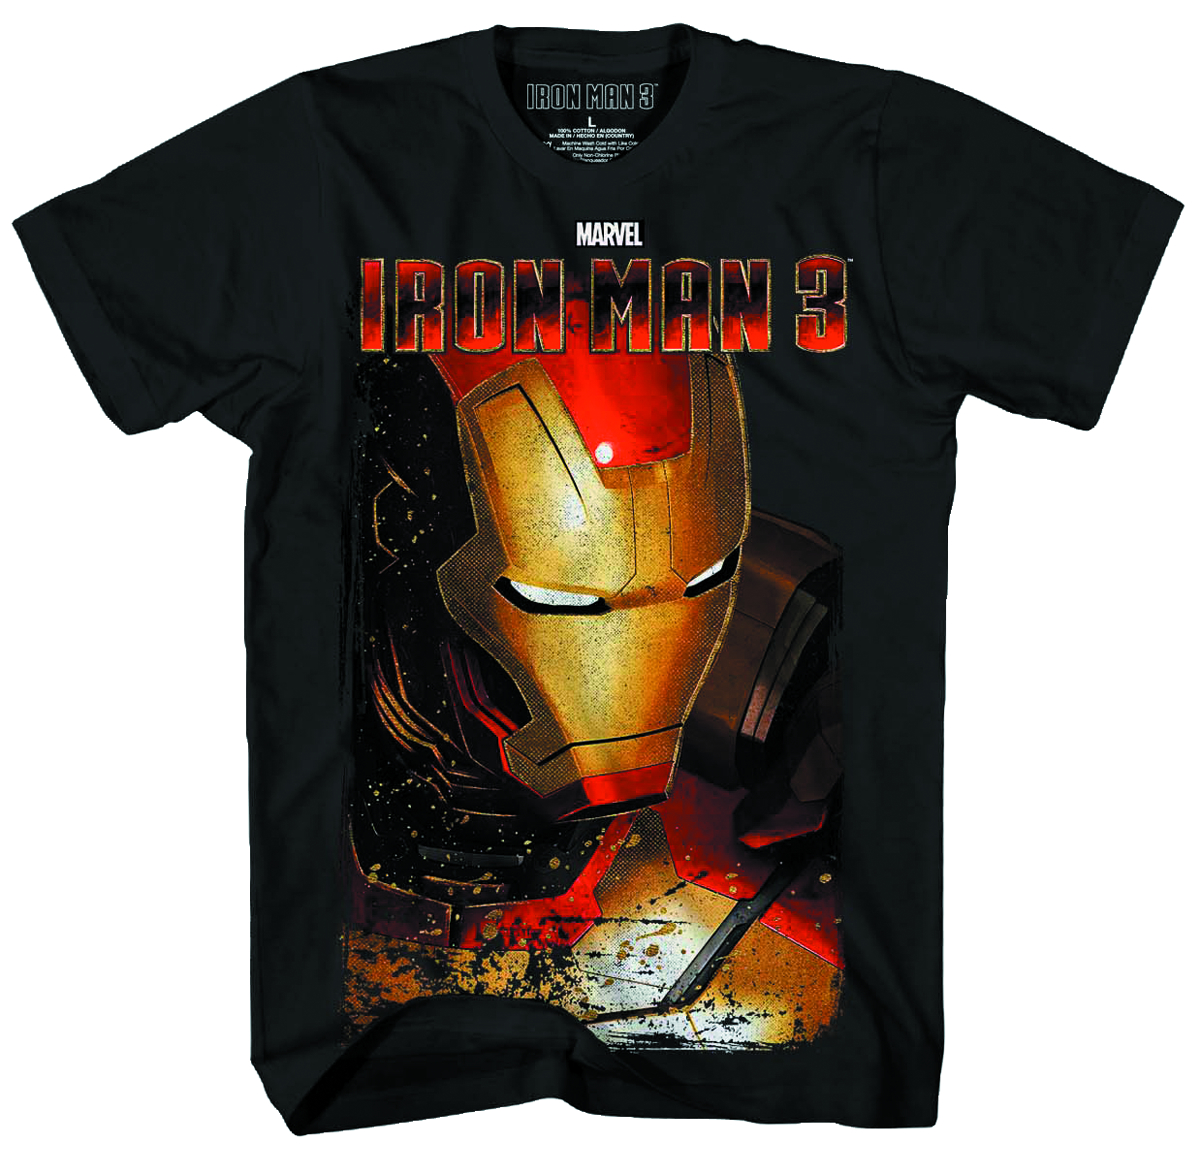 IRON MAN 3 FULL SHELL-M PX BLK LIQUID GOLD T/S XXL